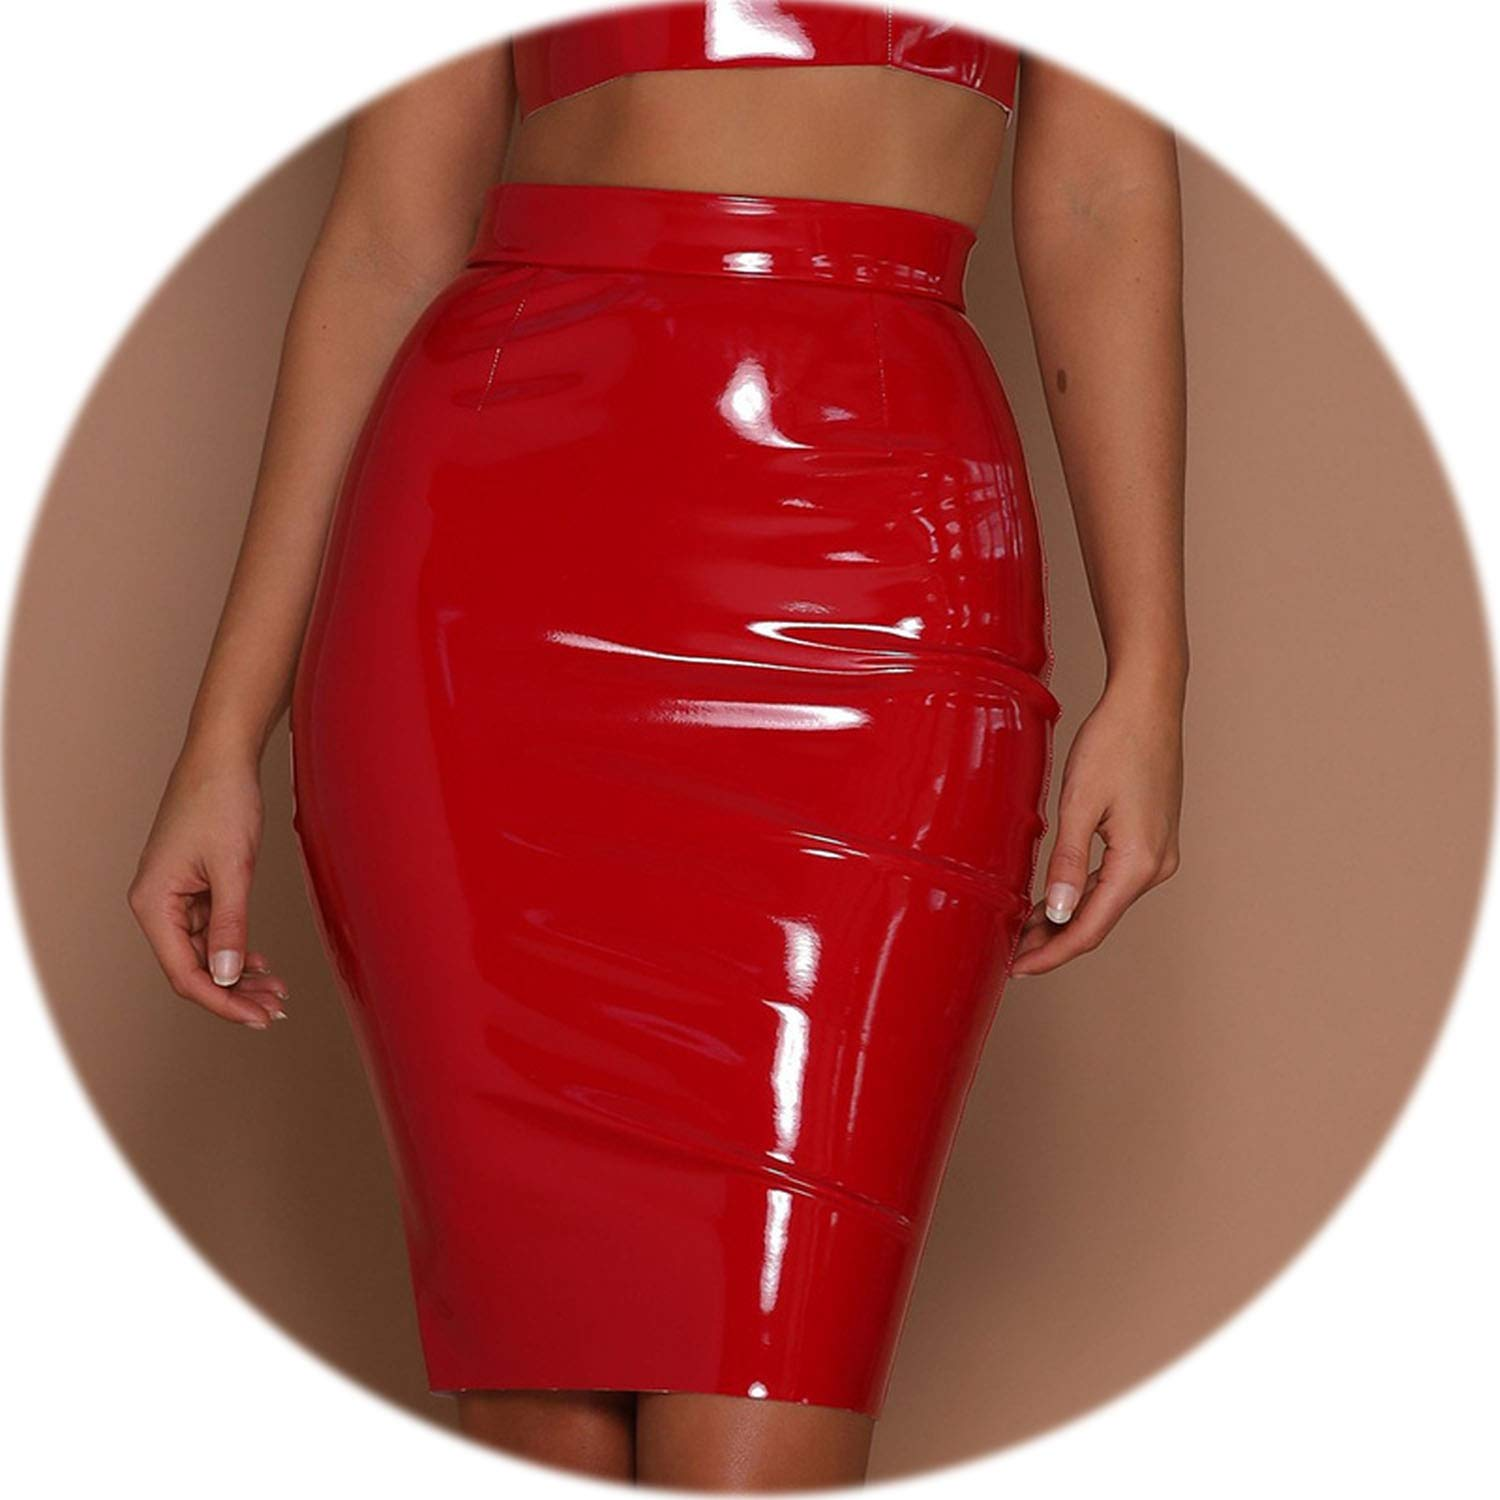 2cf056c53f Sexy Black PU Leather Pencil Skirt Women High Waist Bodycon Winter Skirt  Zipper Casual Party Short Skirts,Red,M: Amazon.ca: Clothing & Accessories